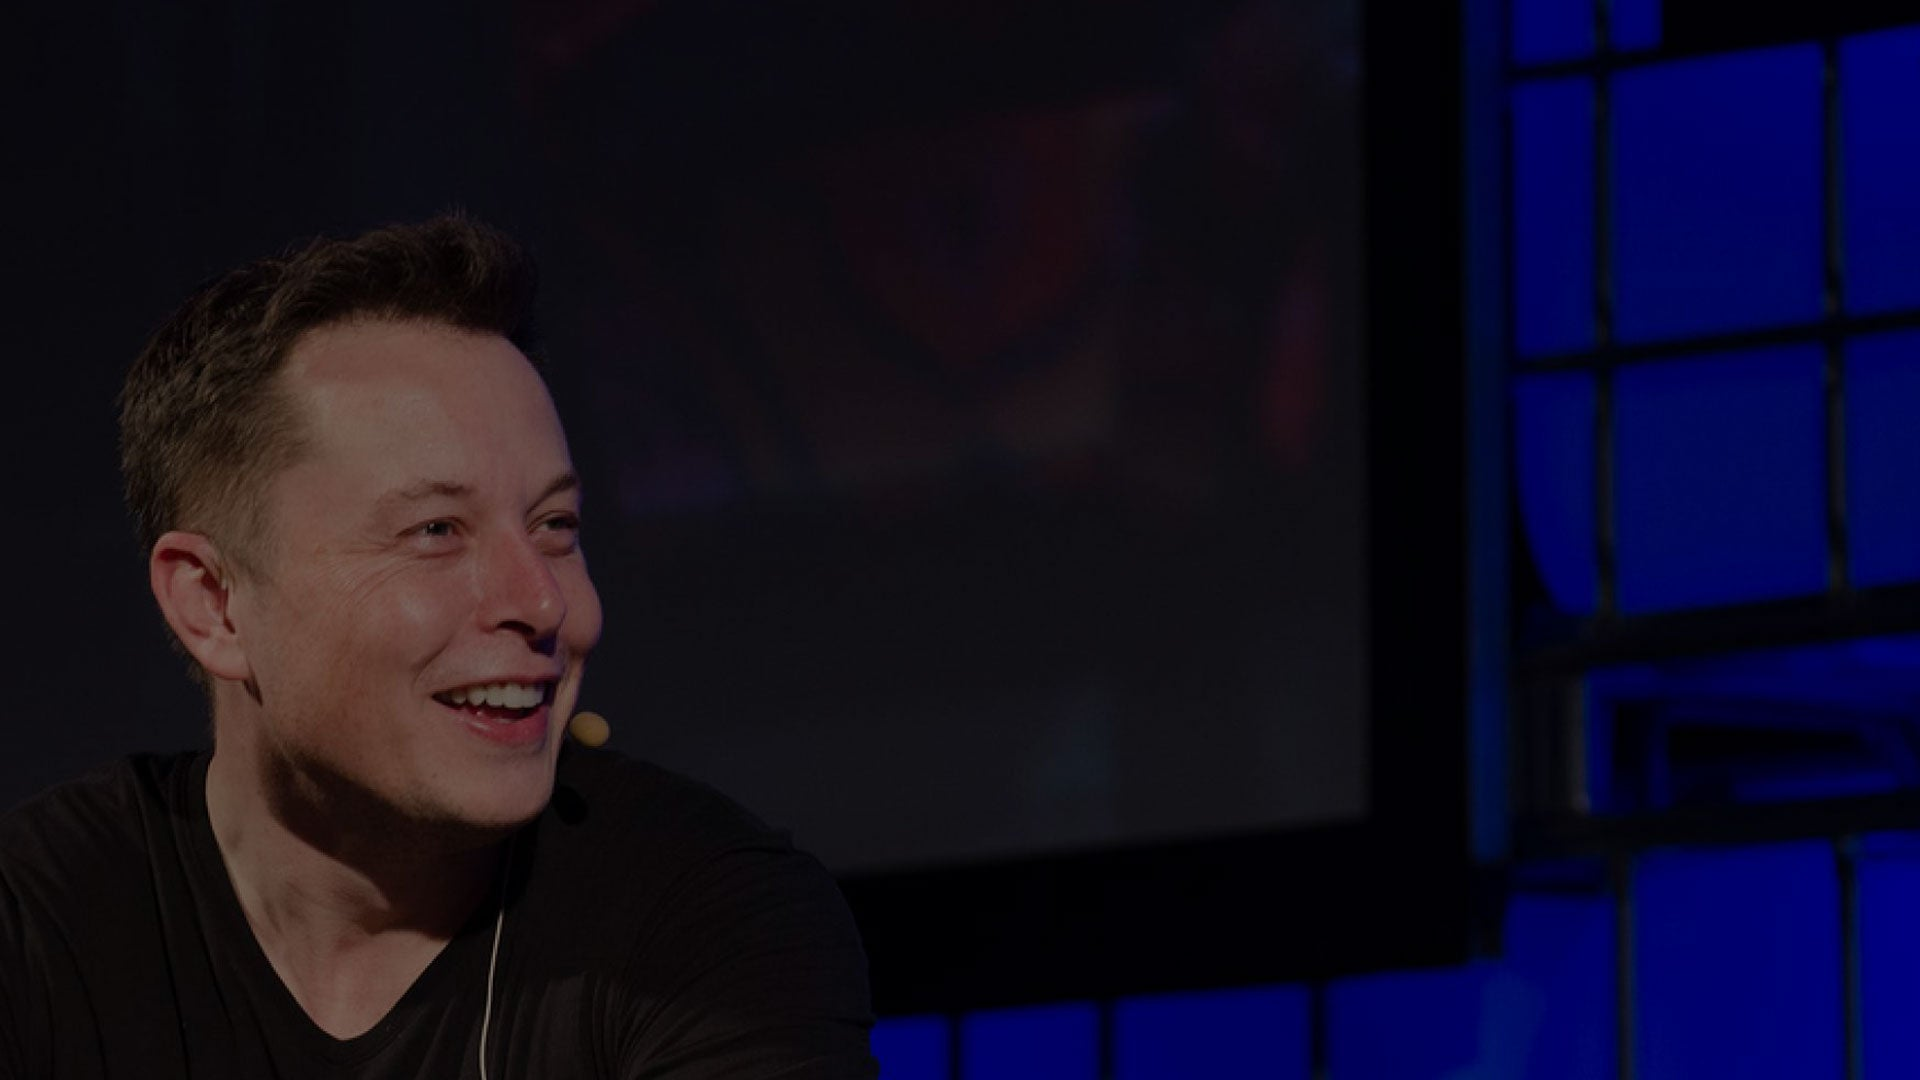 7 Elon Musk Productivity Tips and Advice